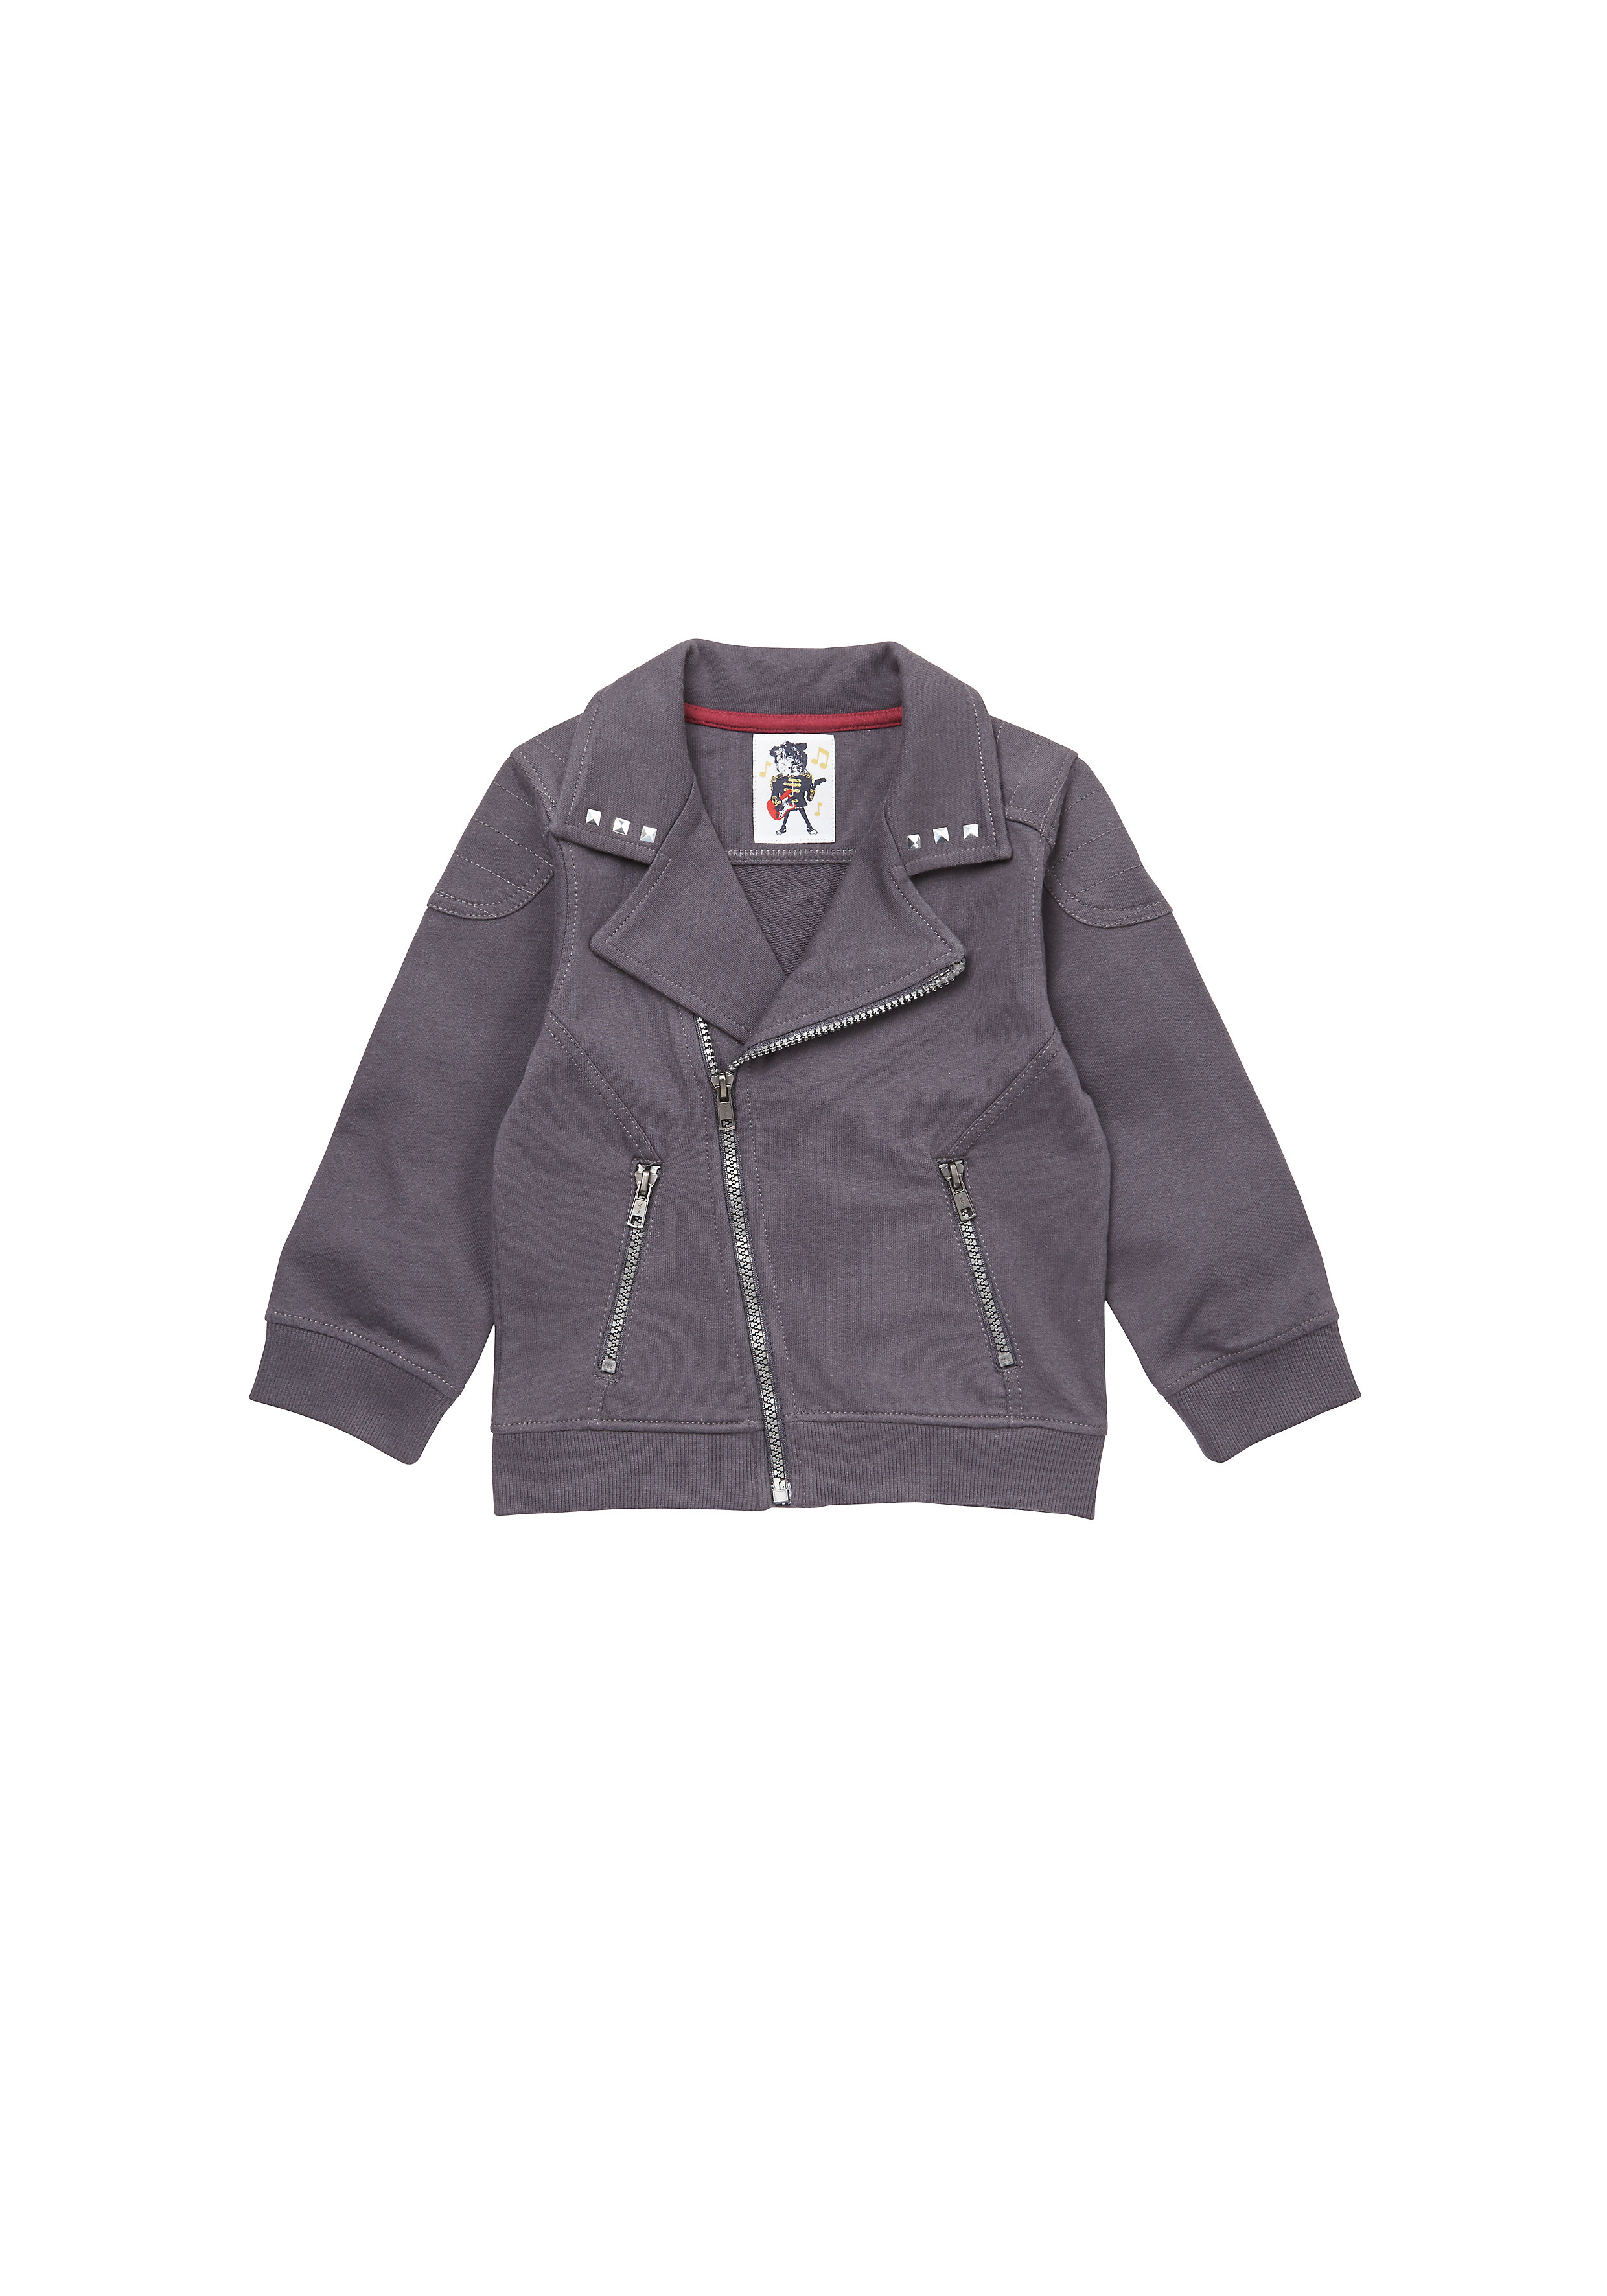 Mothercare | Boys Full Sleeves Jacket Asymmetrical Zip Opening - Charcoal